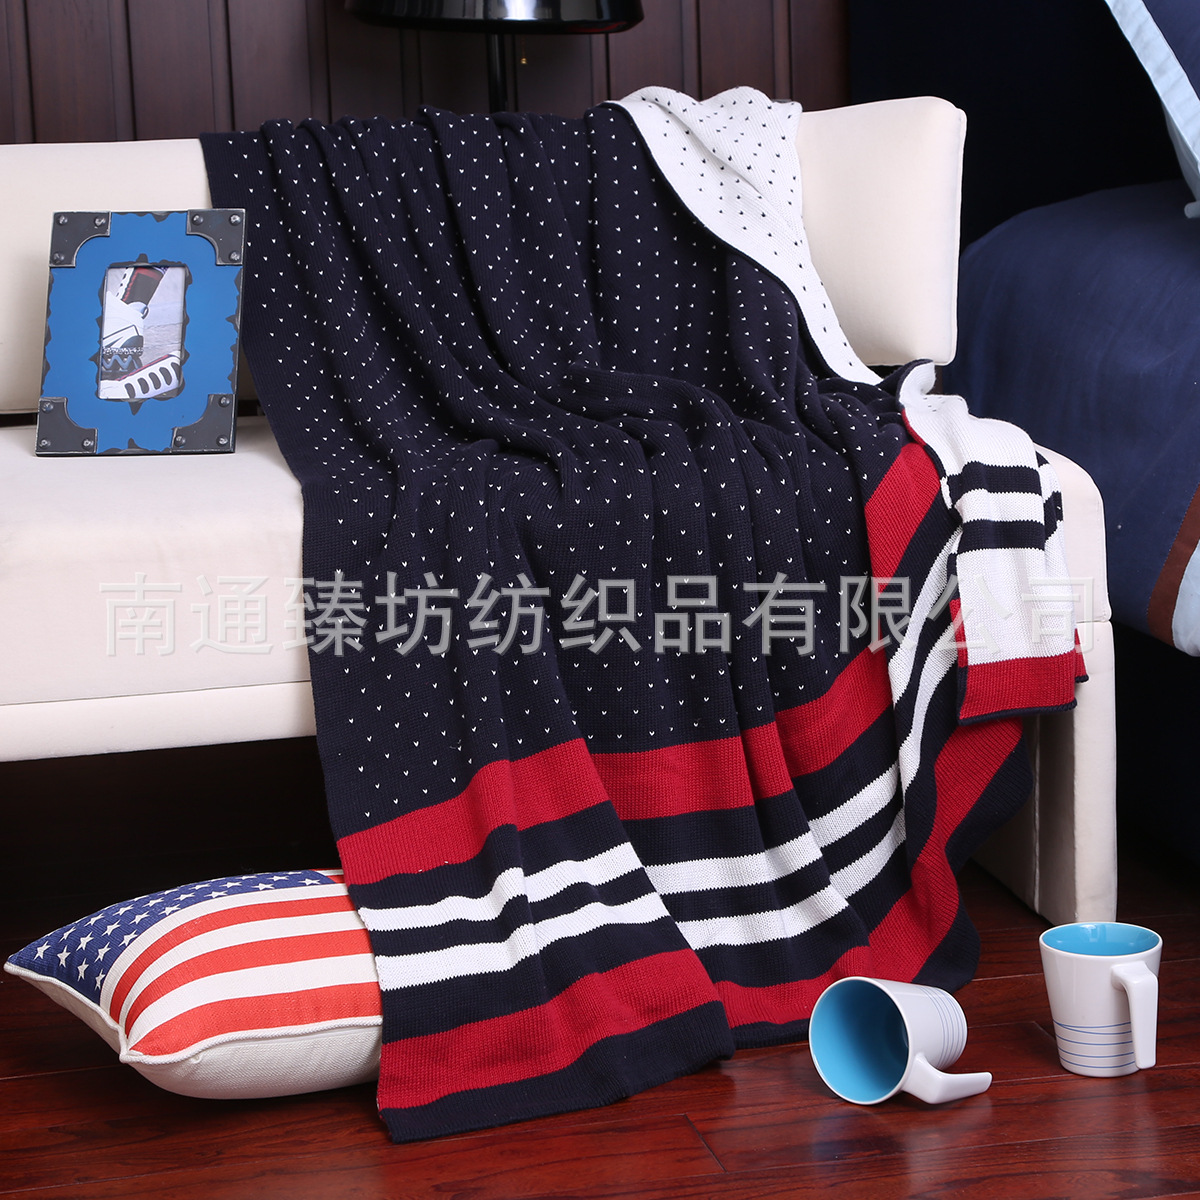 ФОТО  100%Cotton Thick Blanket british look Home Adult Plaid Beautiful Blanket Warm Winter Sofa Travel Blanket Portable Healthy Life